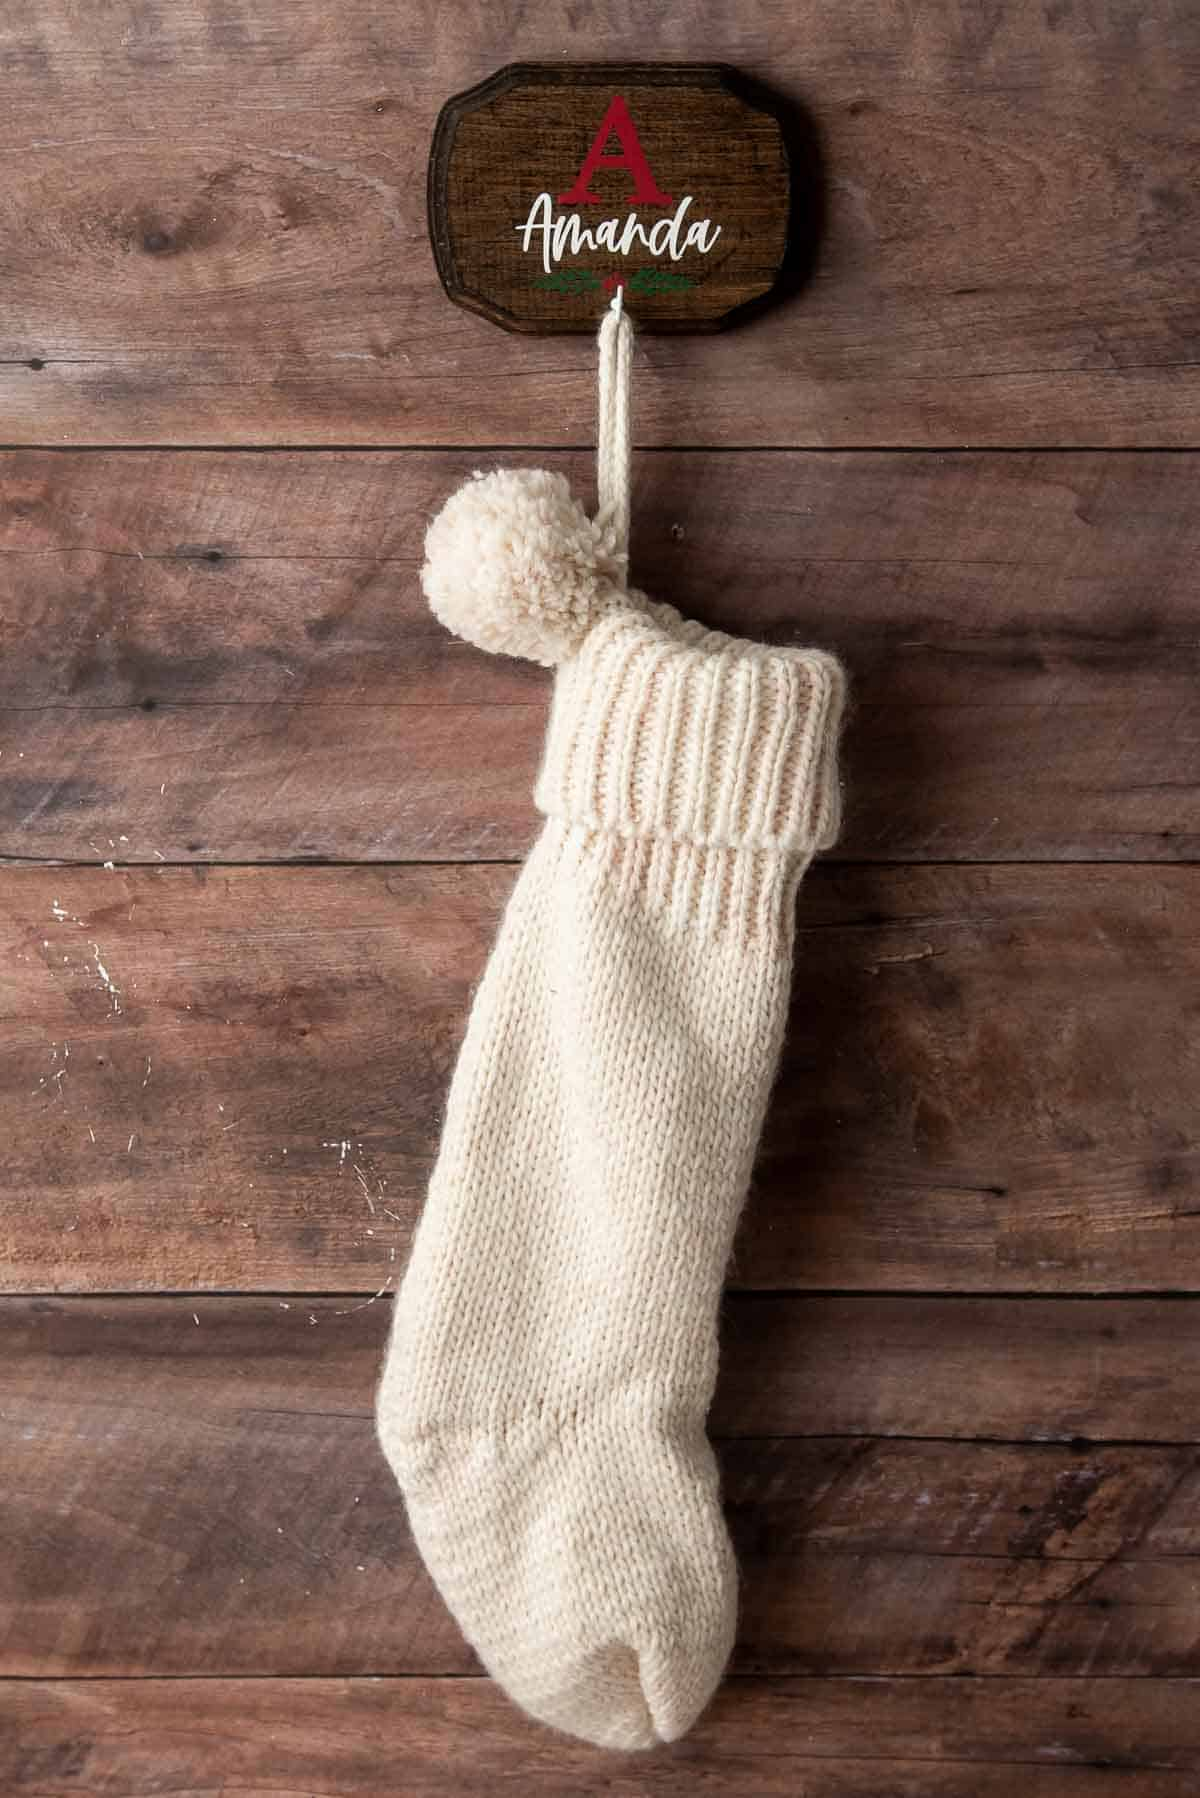 personalized DIY wall mount stocking hanger with knit stocking on wall